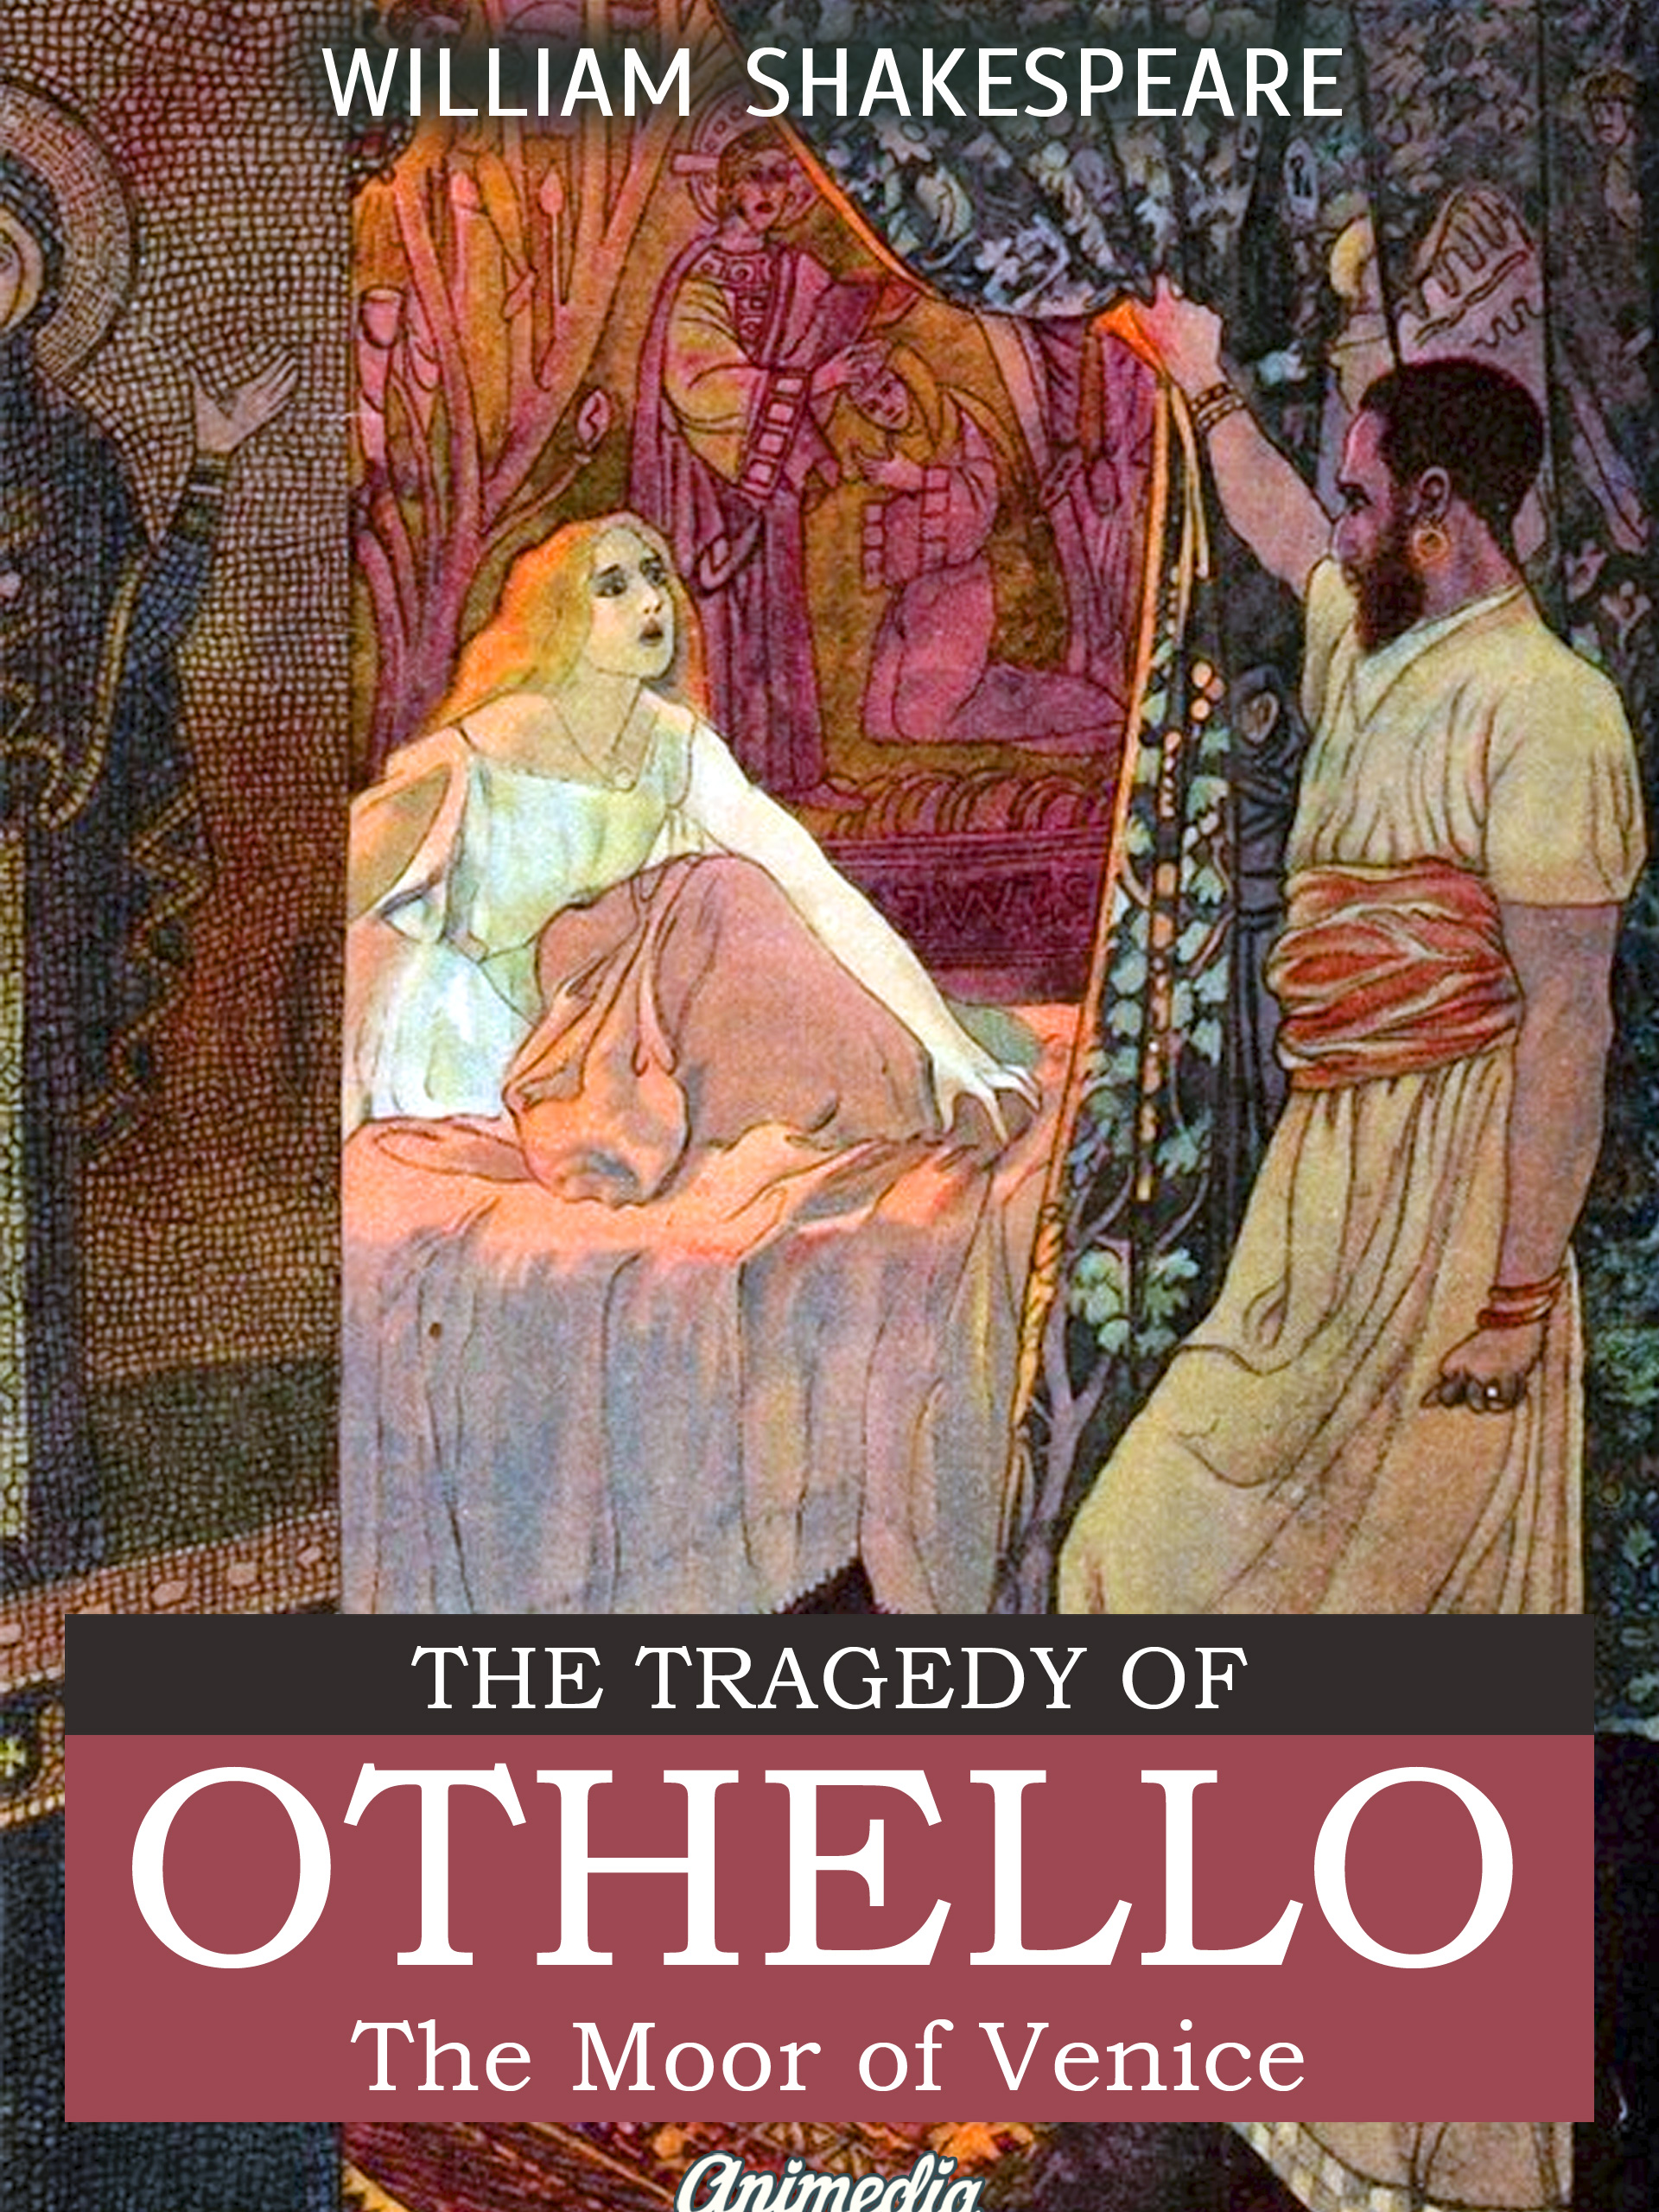 an analysis of the techniques iago used to manipulate others in the tragedy of othello the moor of v Othello (9:18) enter iago and roderigo , the moor might tell him about my lies about him—that would be very dangerous for me.